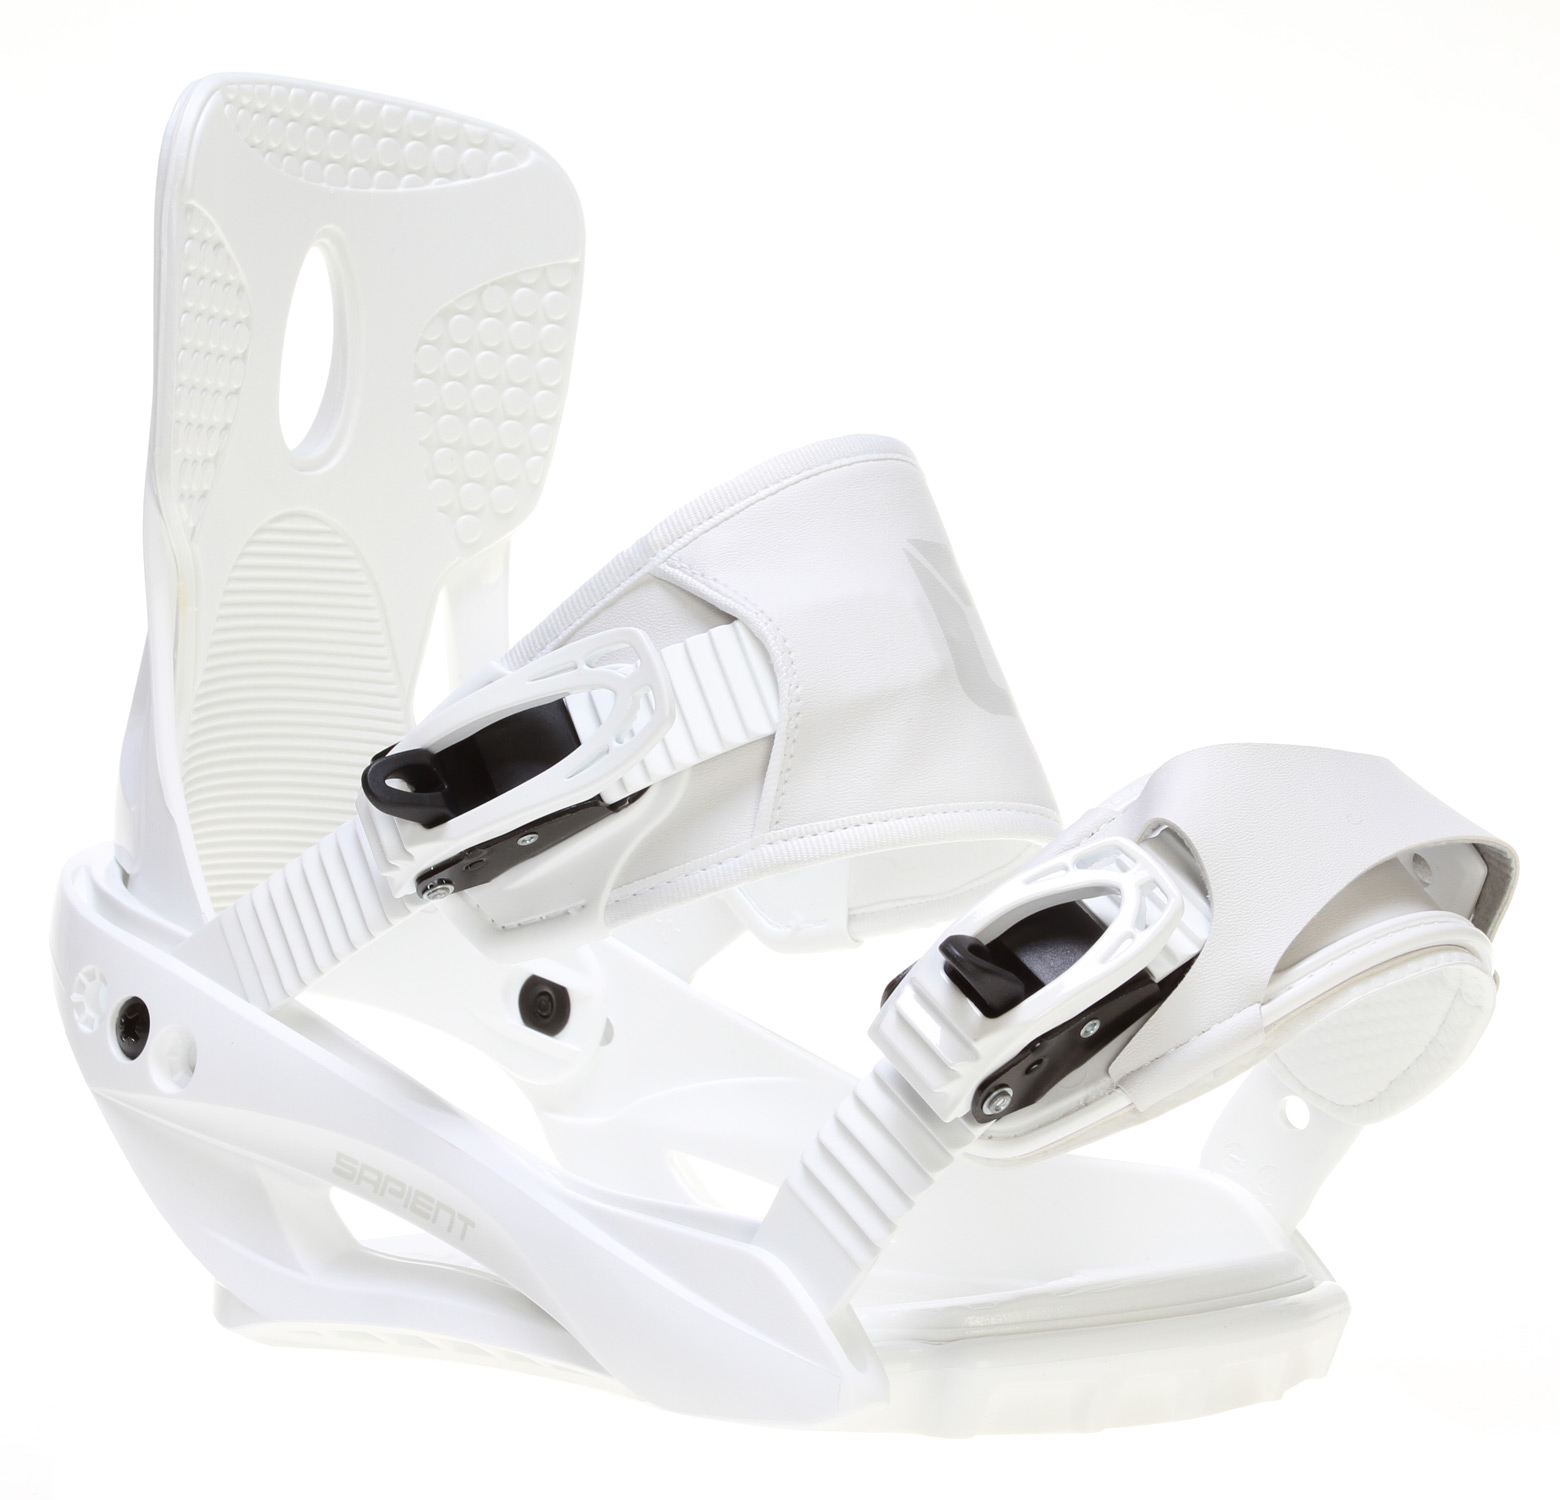 Snowboard These bindings were made for stomping and that is just what they will do! This strap contraption features a fiberglass reinforced plastic baseplate, lightweight cored highback and comfortable sewn straps. With a heavily padded footbed, metal ratchets and quick adjust hardware these pups are ready to shred the slopes but not your wallet. Finally, they only come in white so they look great on any board.Key Features of the Sapient Zeus Snowboard Bindings: Fiber reinforced nylon Cored highback Metal ratchets Sewn straps with quick adjust ankle - $71.95